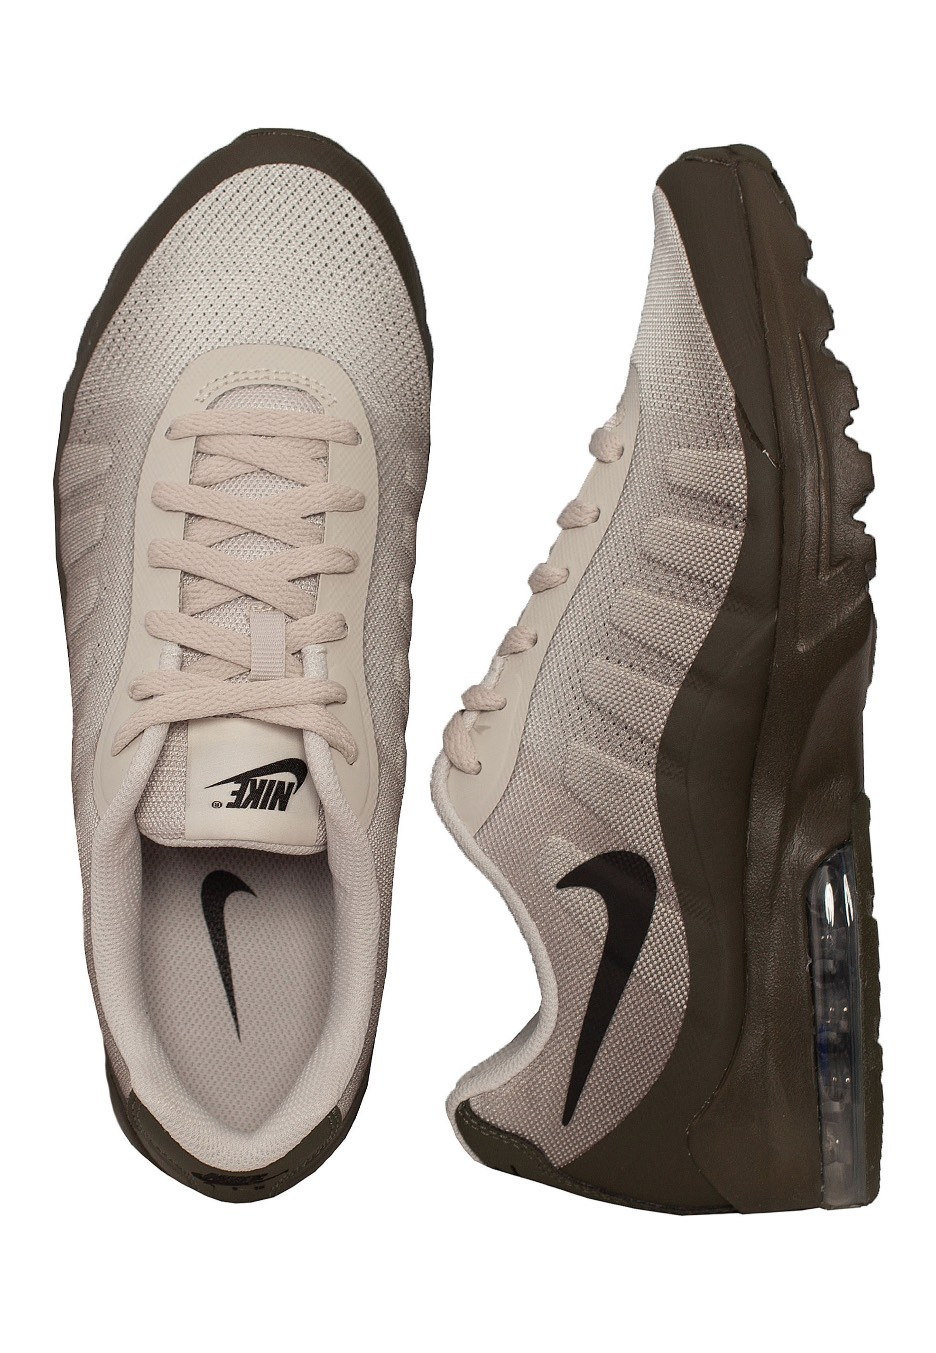 Nike - Air Max Invigor Print Light Bone Black Cargo Khaki - Shoes -  Impericon.com AU e20420442